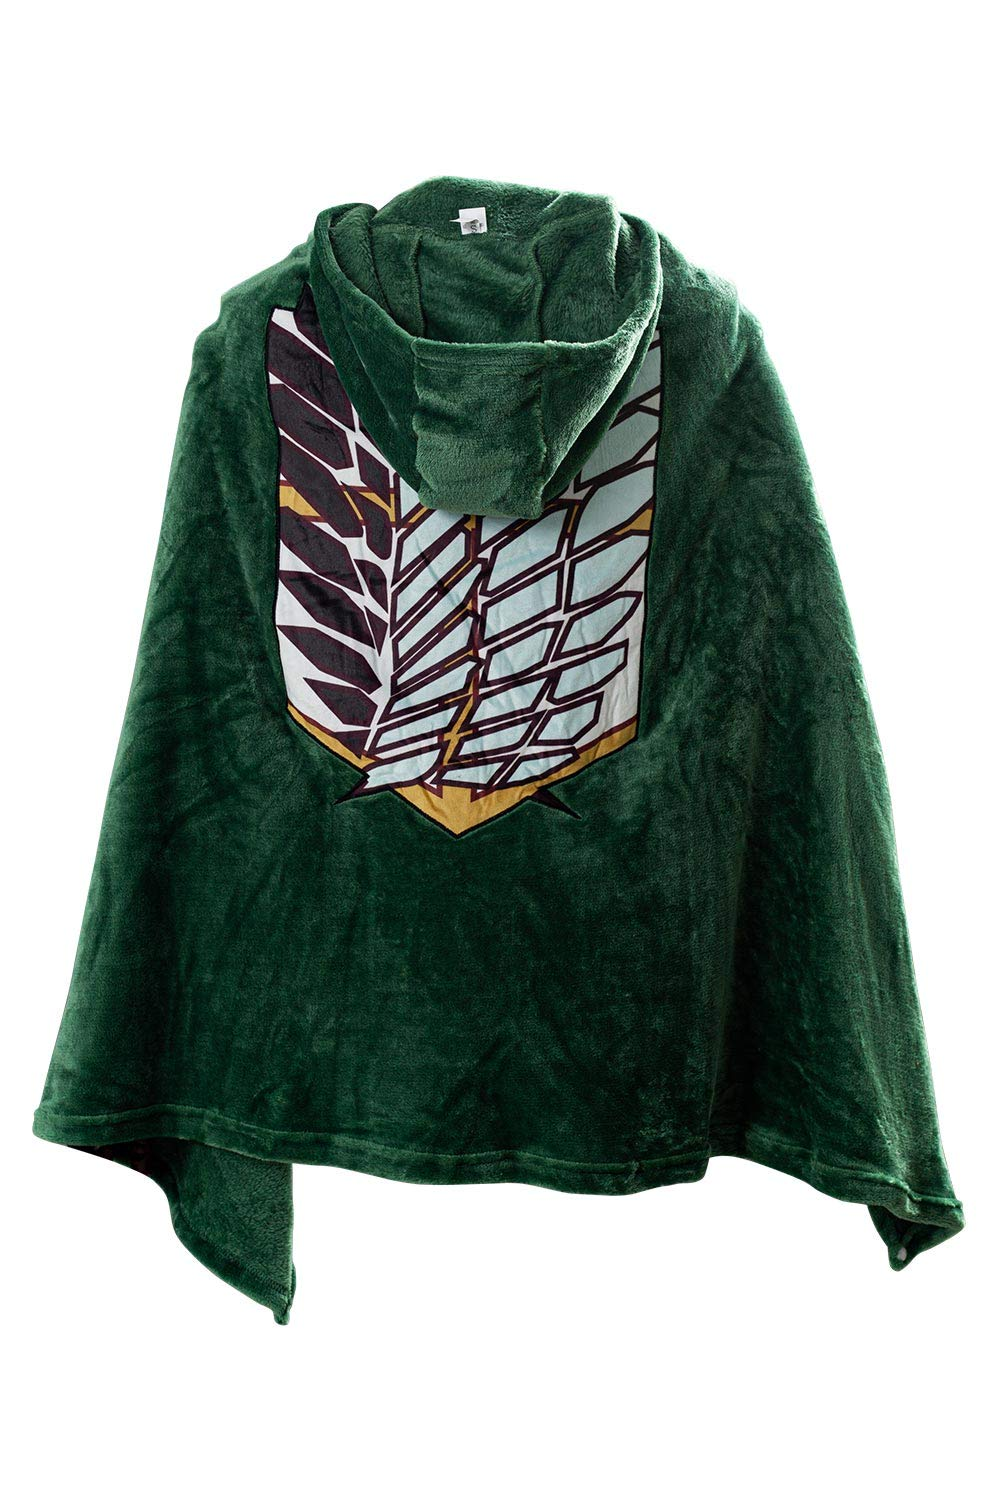 Tifnoyi AOT The Wings of Freedom Flannel Cloak Blanket Halloween Cosplay Costume Cape